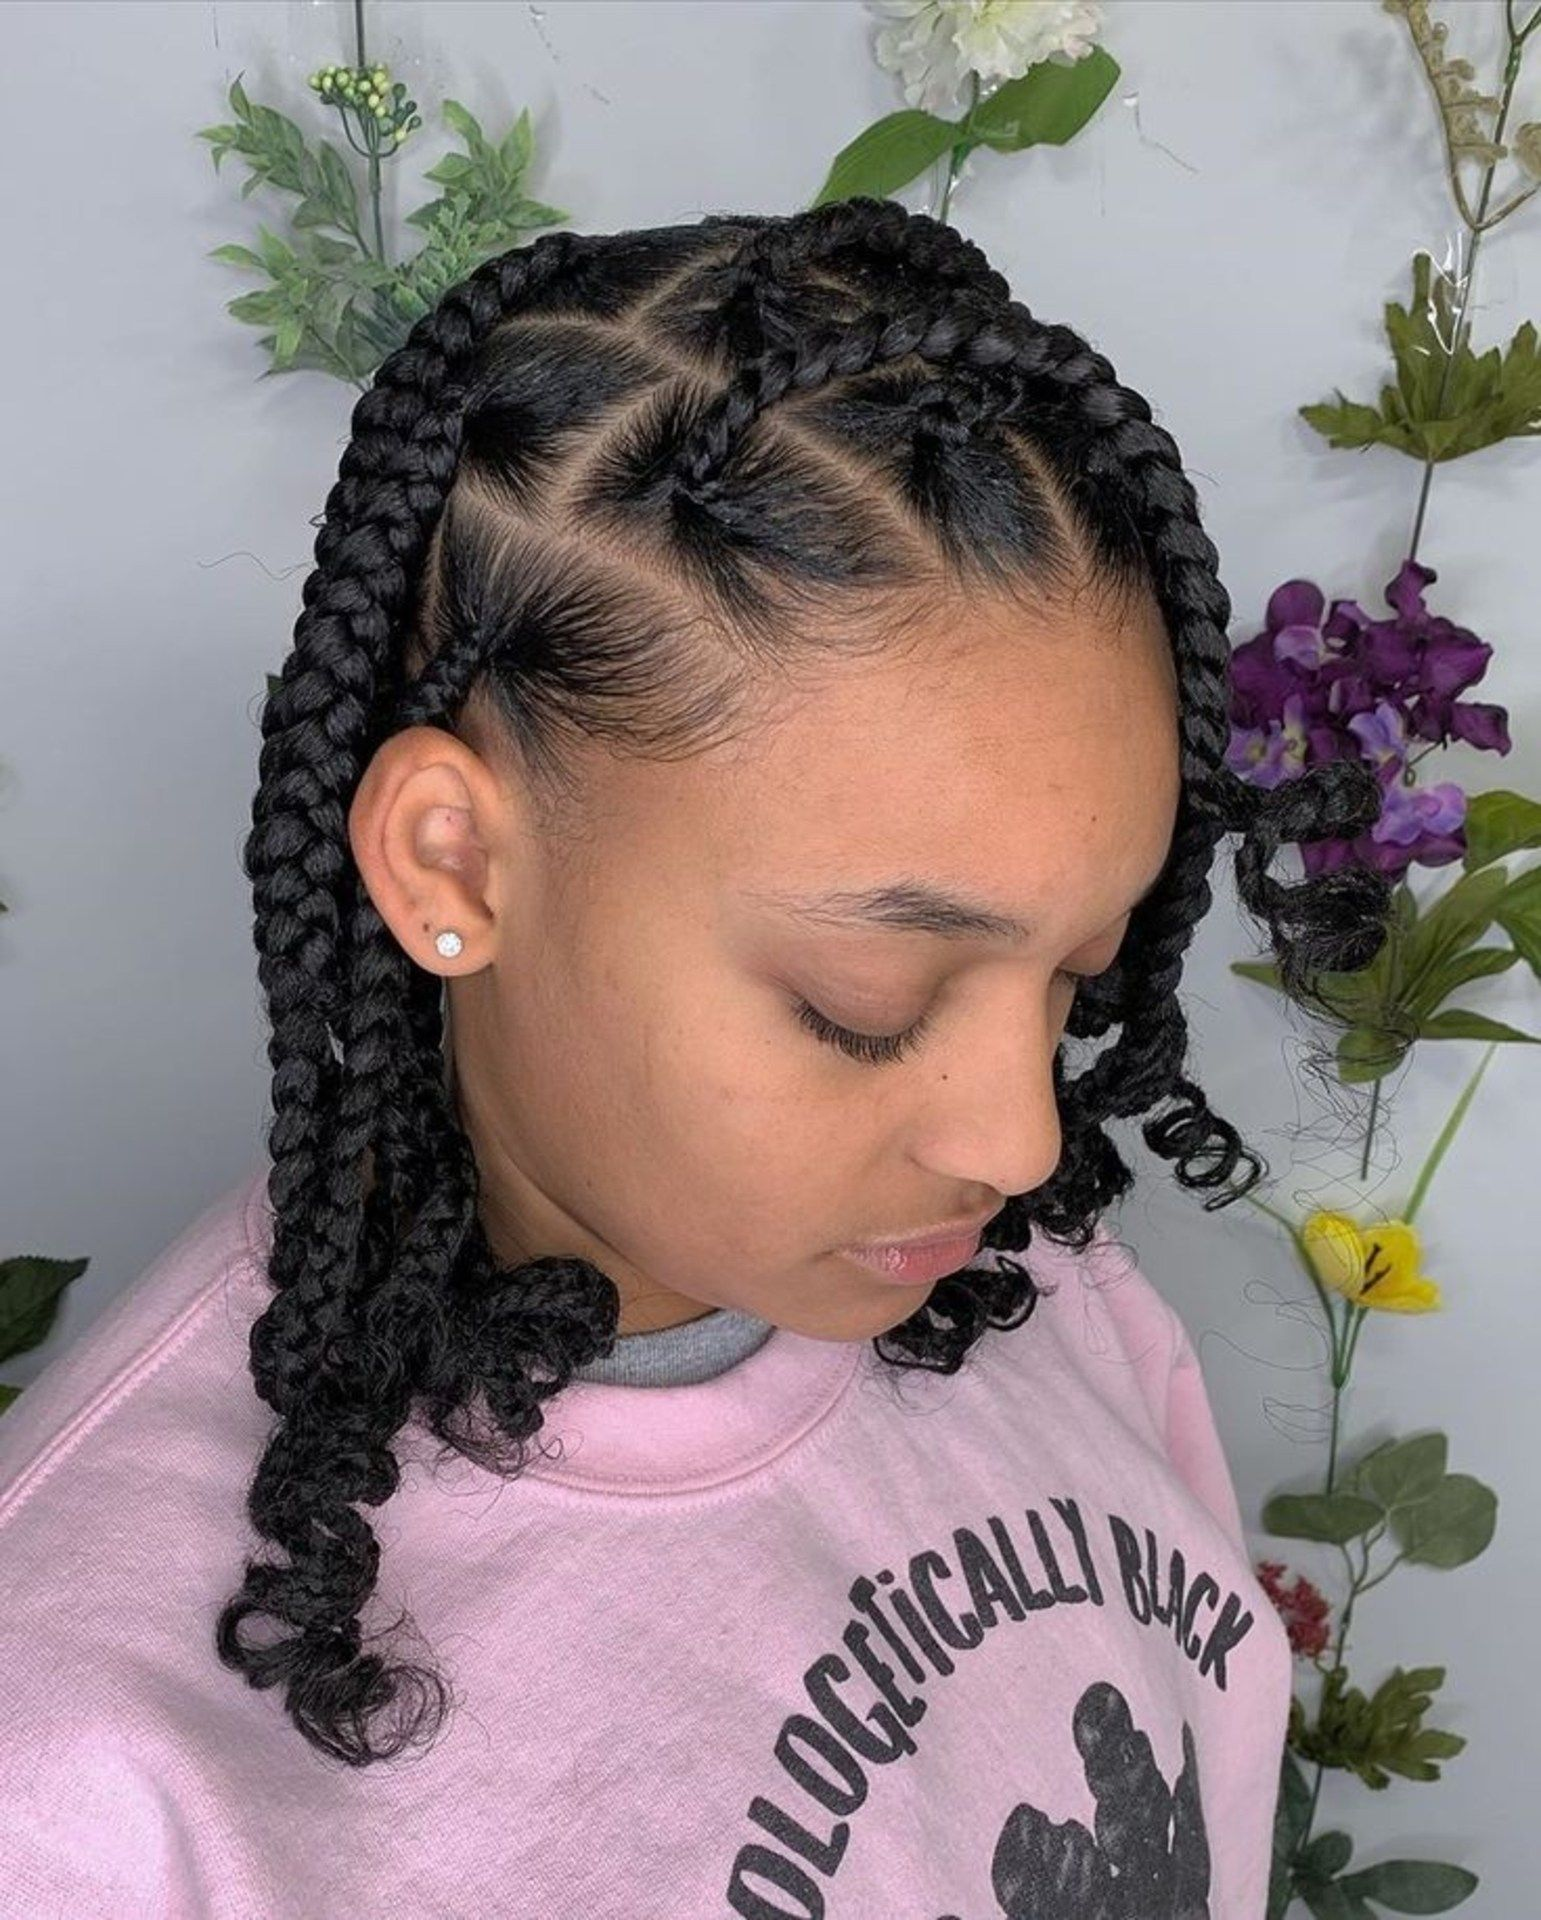 14 Inches Goddess Box Braids In 2020 Natural Hair Braids Braided Hairstyles Protective Hairstyles For Natural Hair